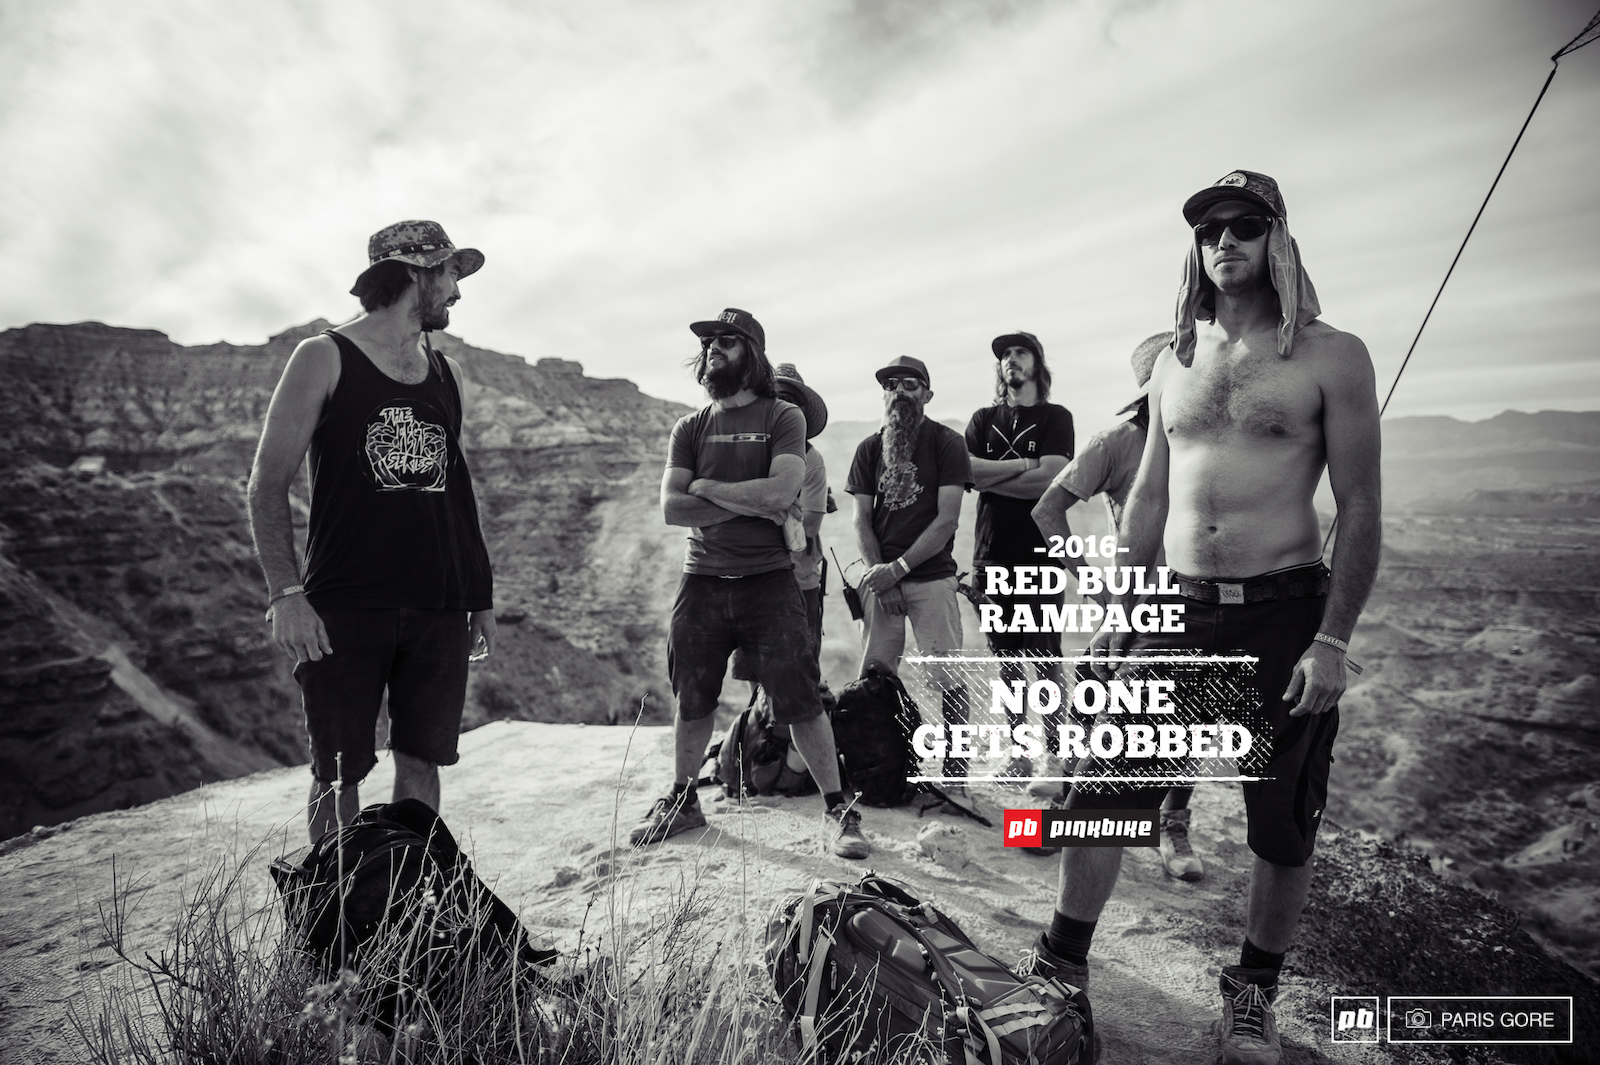 The Red Bull Rampage 2016 Judges